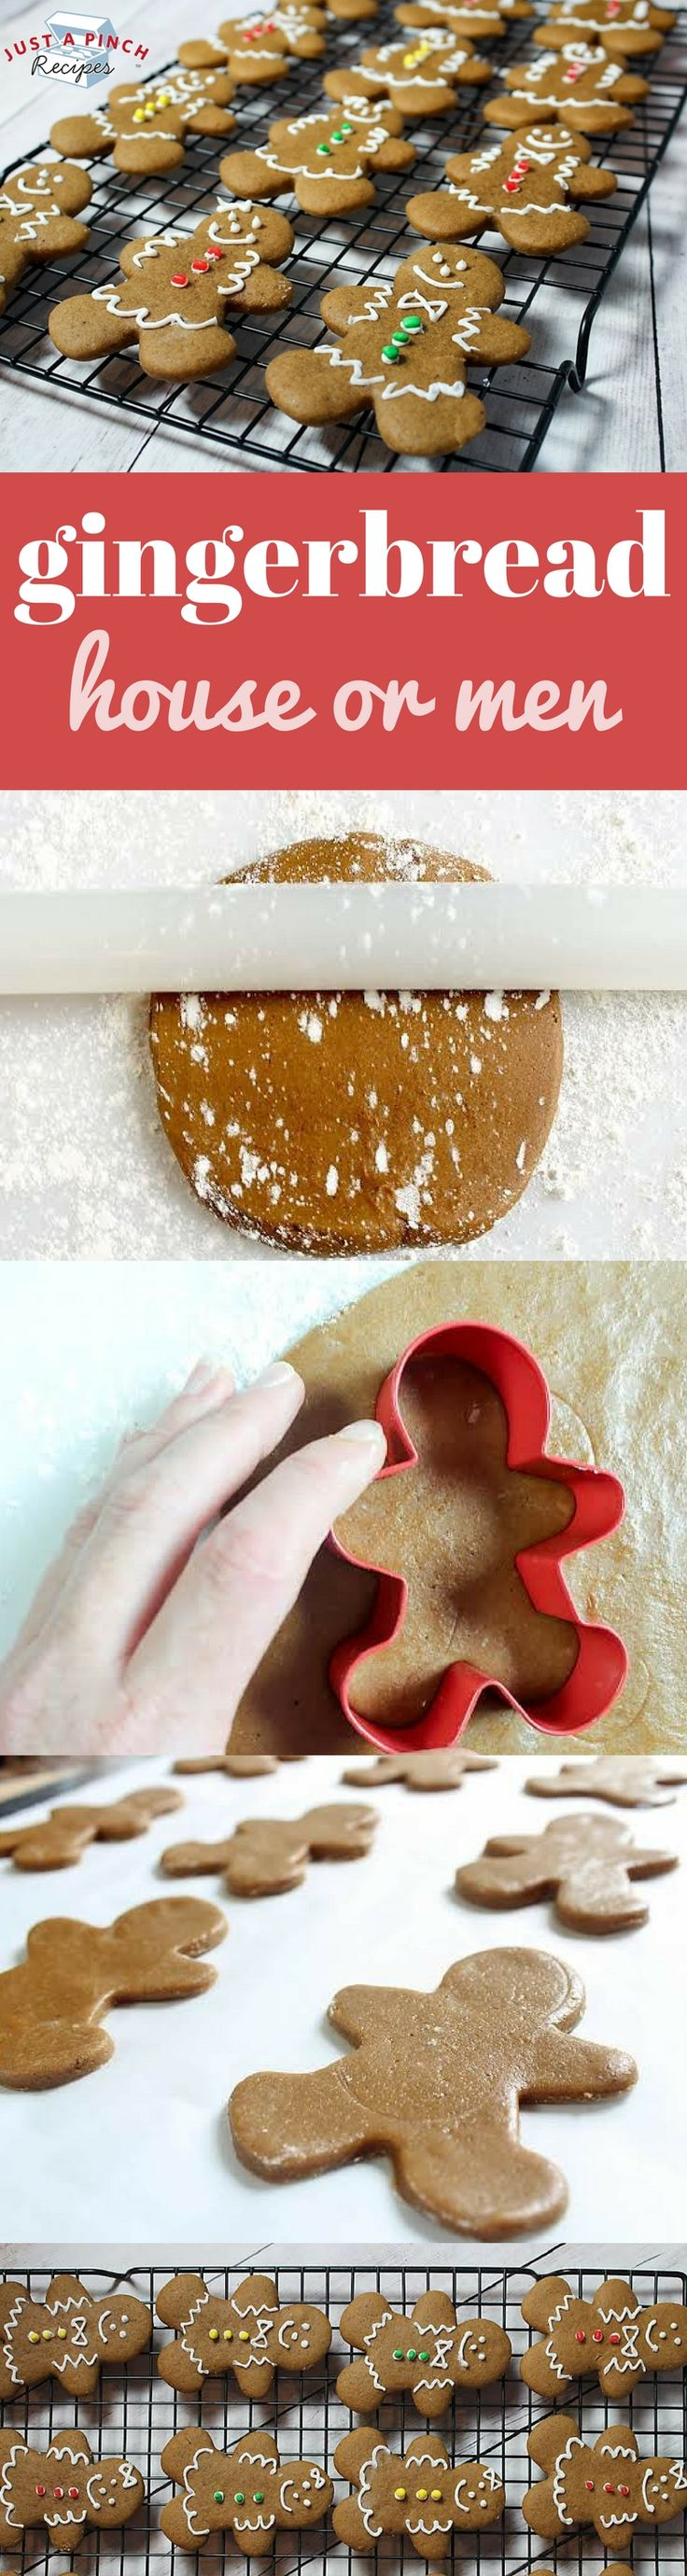 Homemade gingerbread house and homemade gingerbread cookie recipe! #christmas #christmascookies #cookies #cookierecipes #gingerbread #gingerbreadcookies #gingerbreadmen #gingerbreadhouse